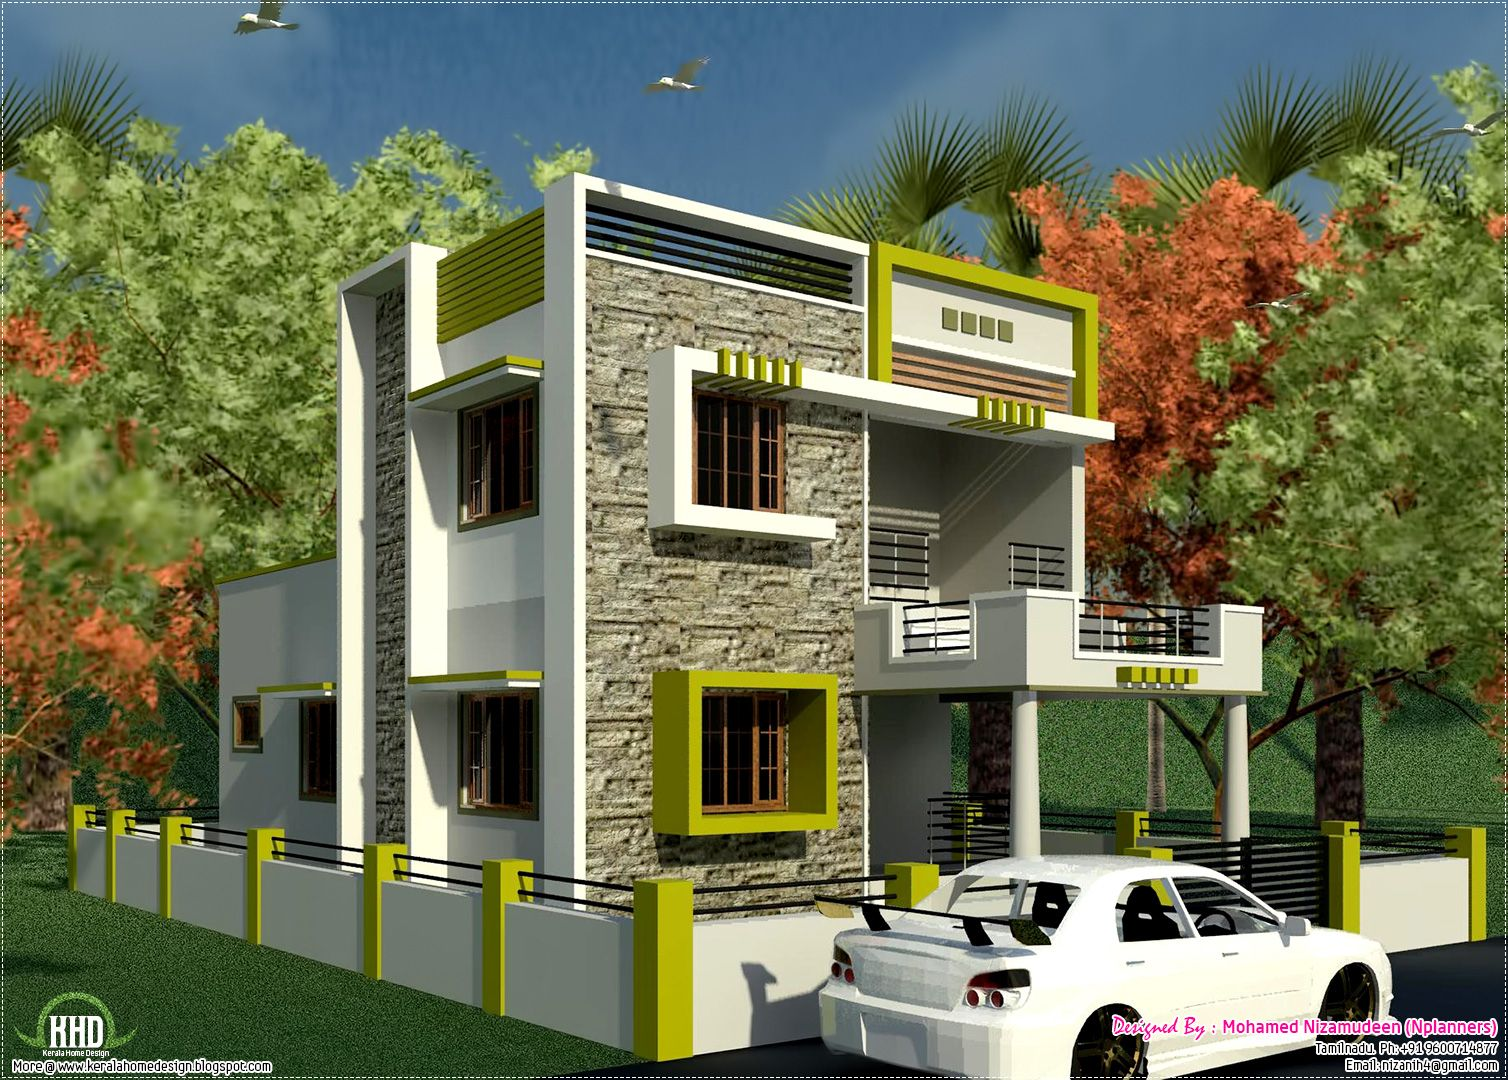 Design Of Houses interior plan houses |  modern 1460 sq. feet house design